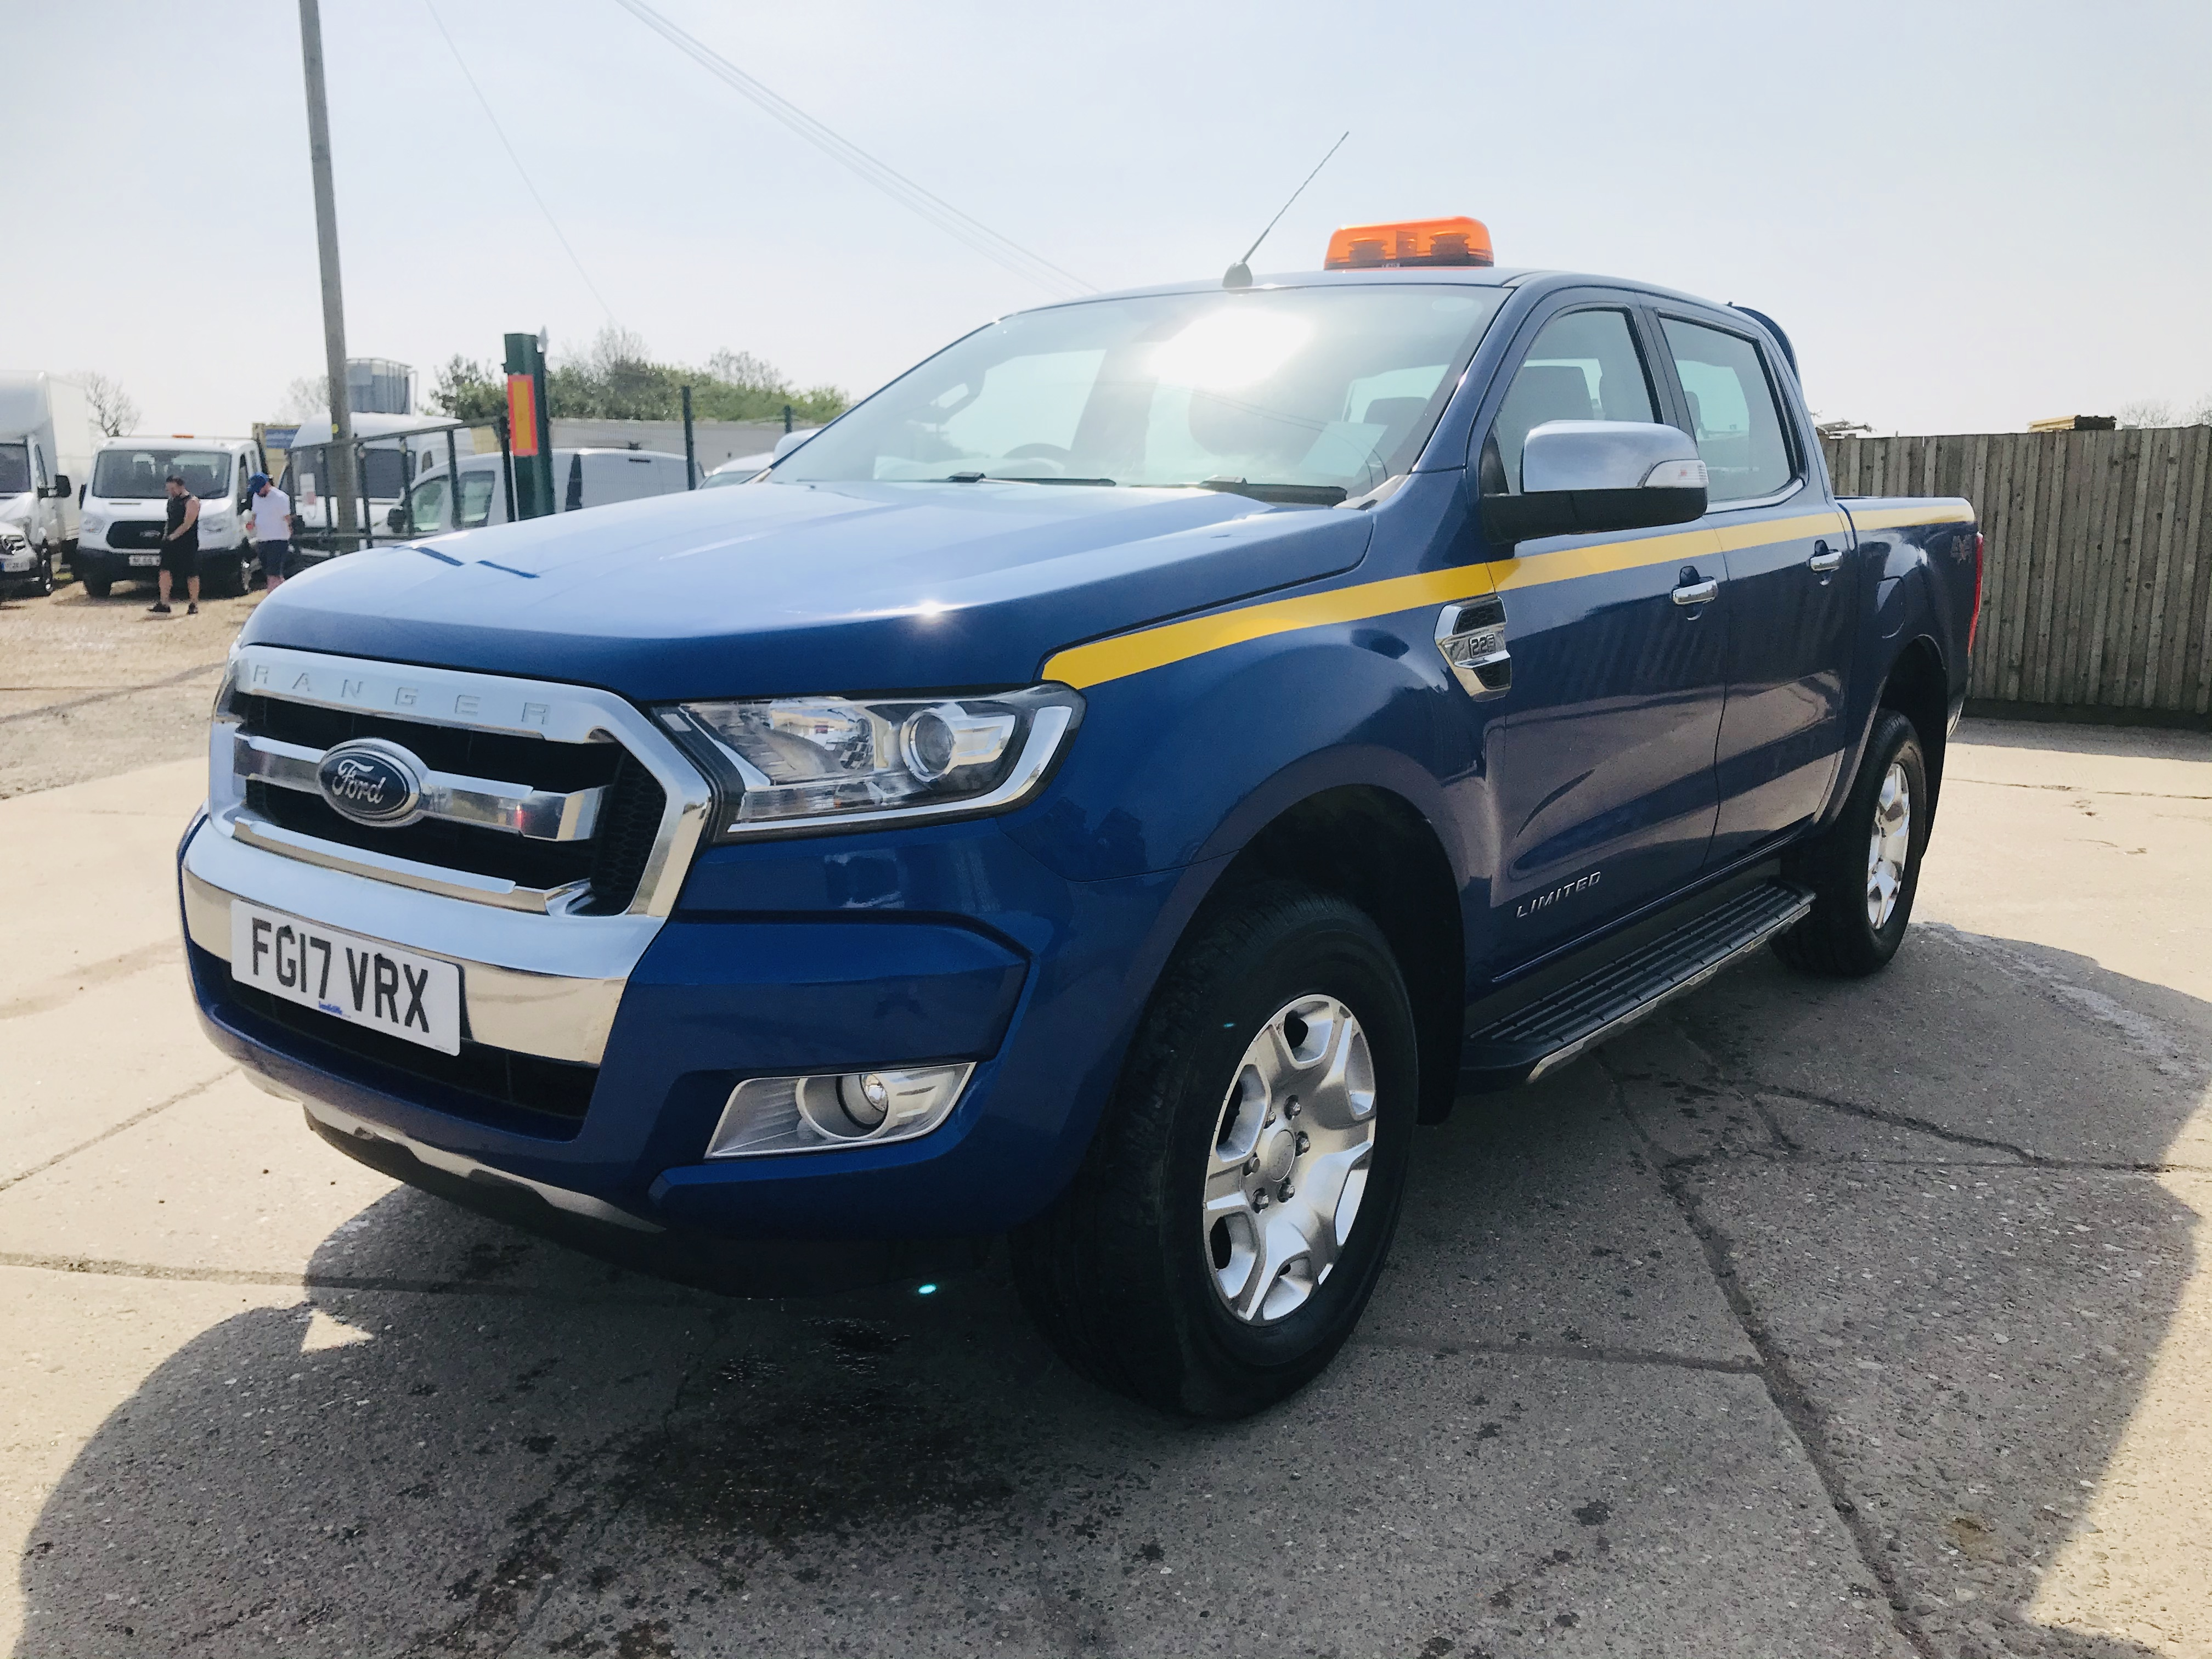 """ON SALE FORD RANGER 2.2TDCI """"LIMITED"""" D/C PICK UP (17 REG) 1 OWNER FSH - FULL LEATHER - CLIMATE & AC - Image 5 of 38"""